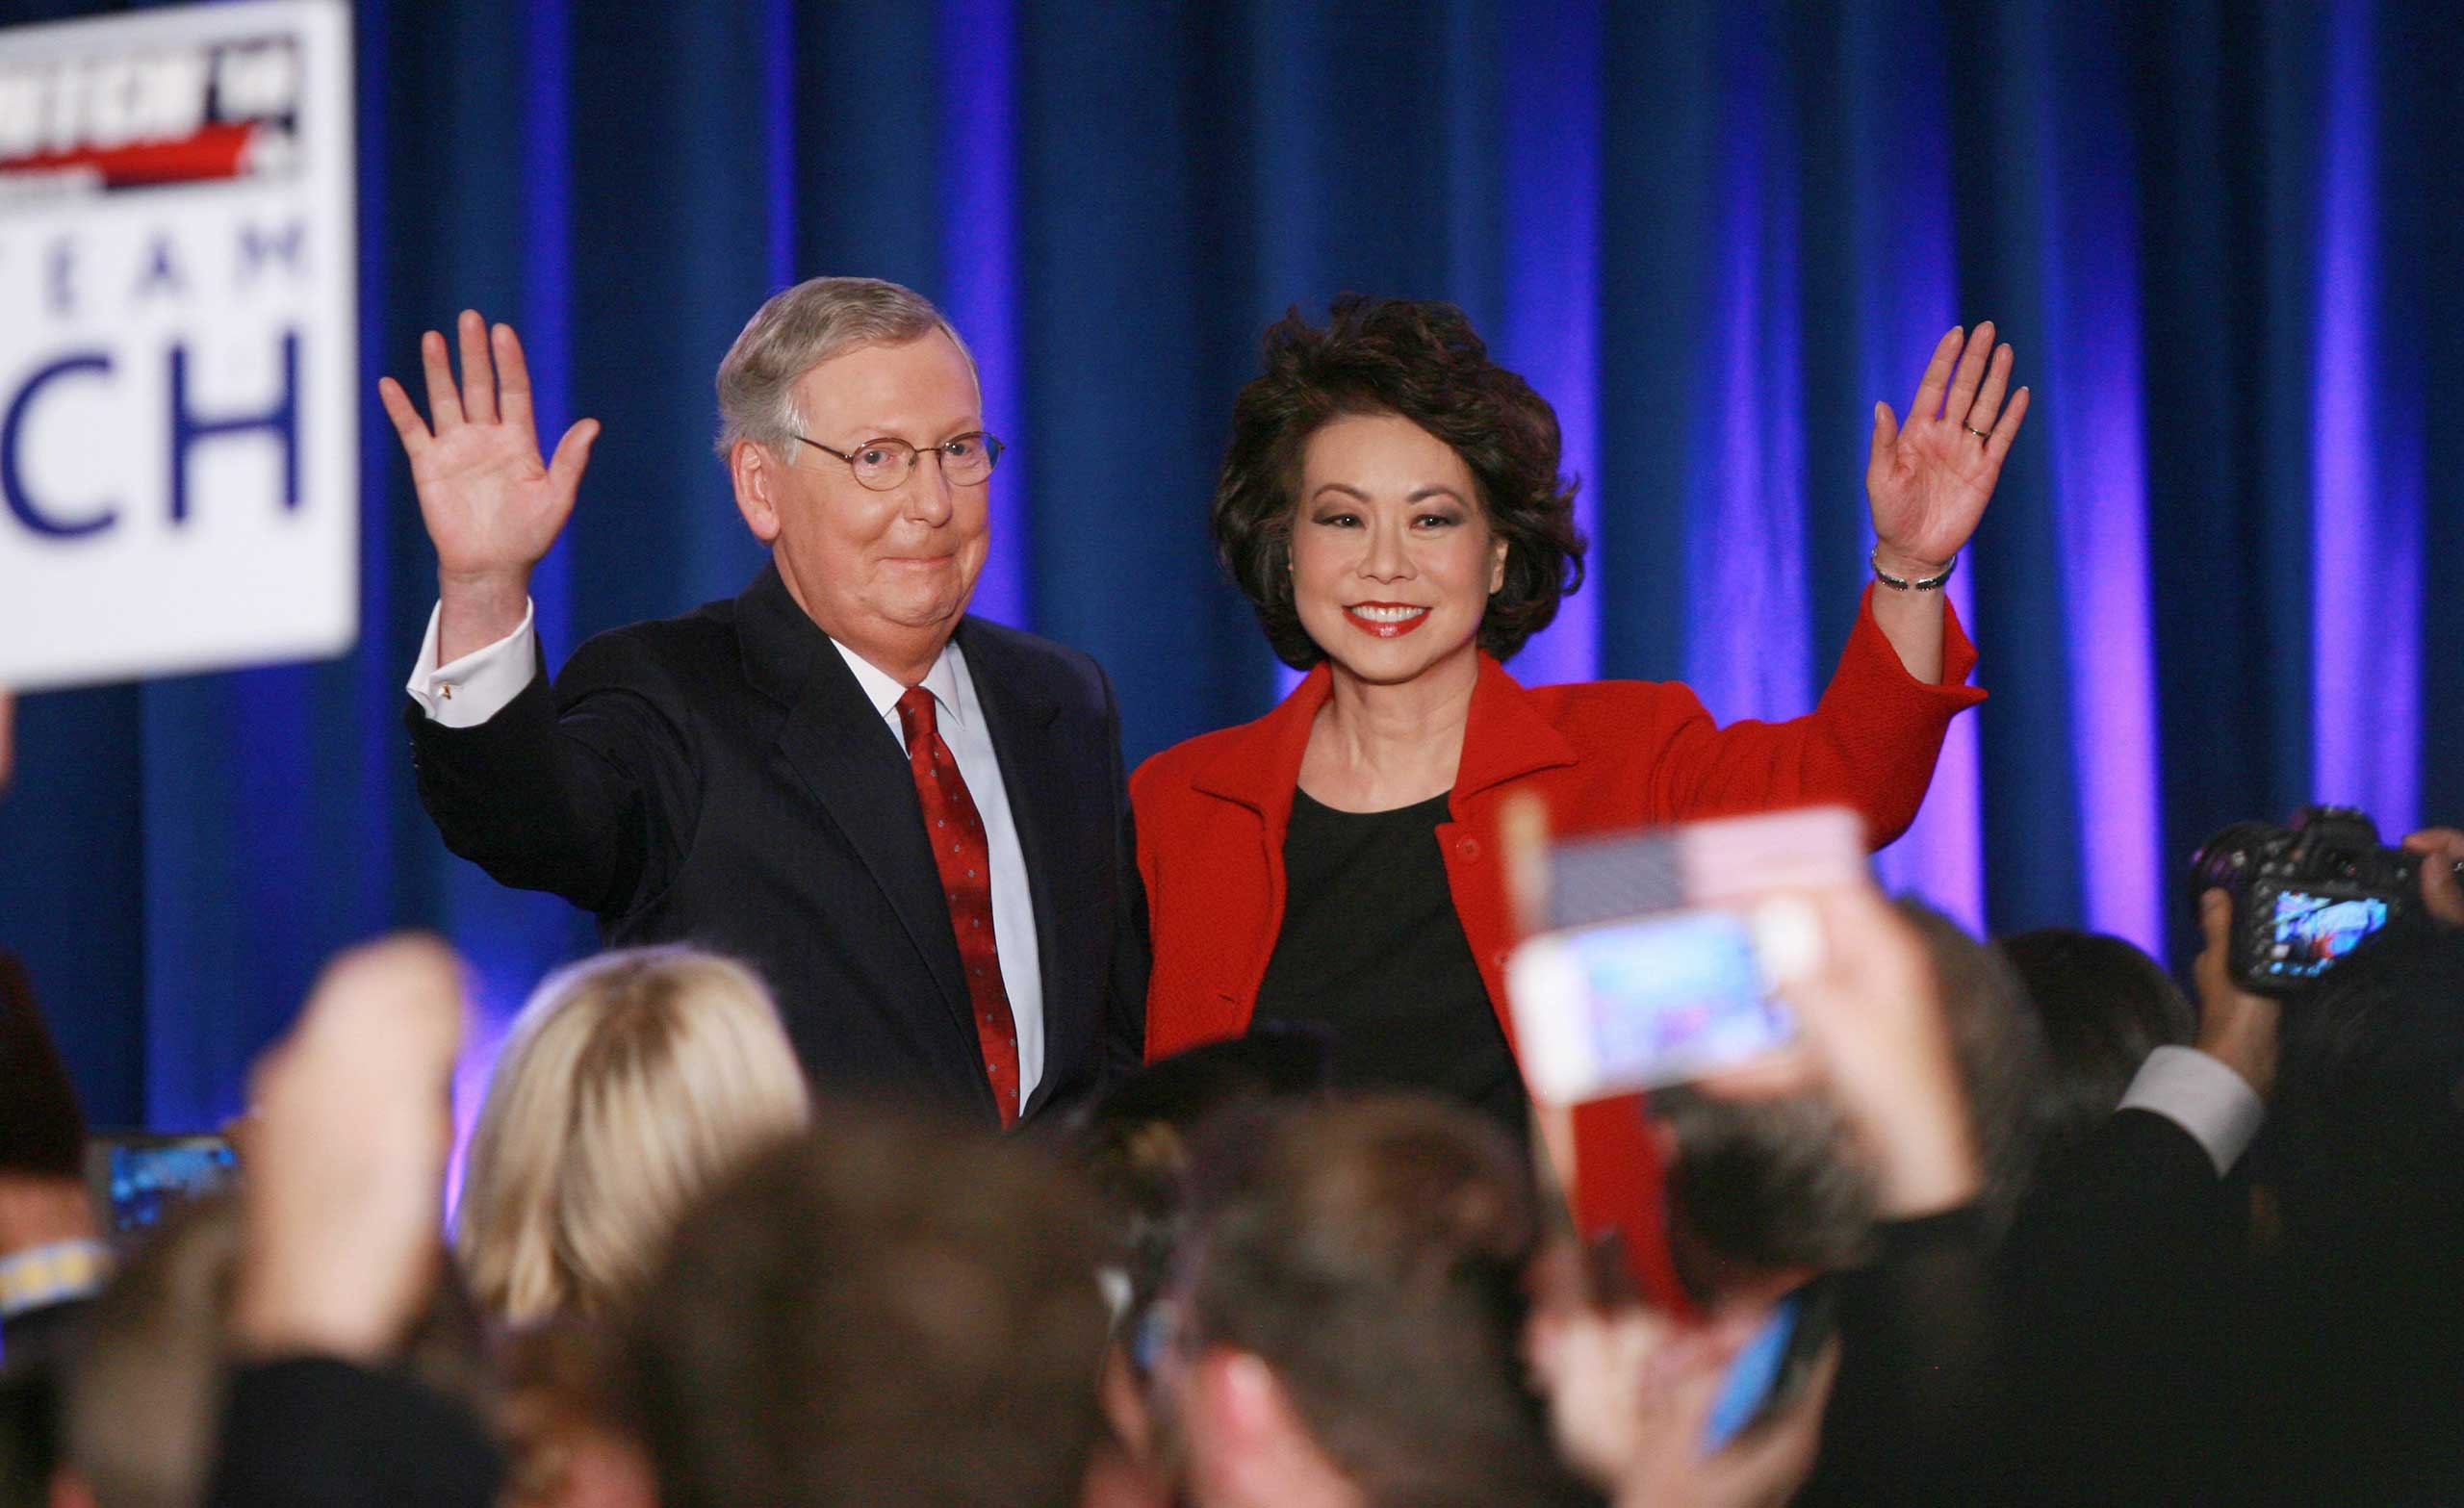 US Sen. Mitch McConnell, Republican from Kentucky, waves to supporters with his wife Elaine Chao during his victory celebration at the Marriott East Hotel in Louisville, Ky. on Nov. 4, 2014.